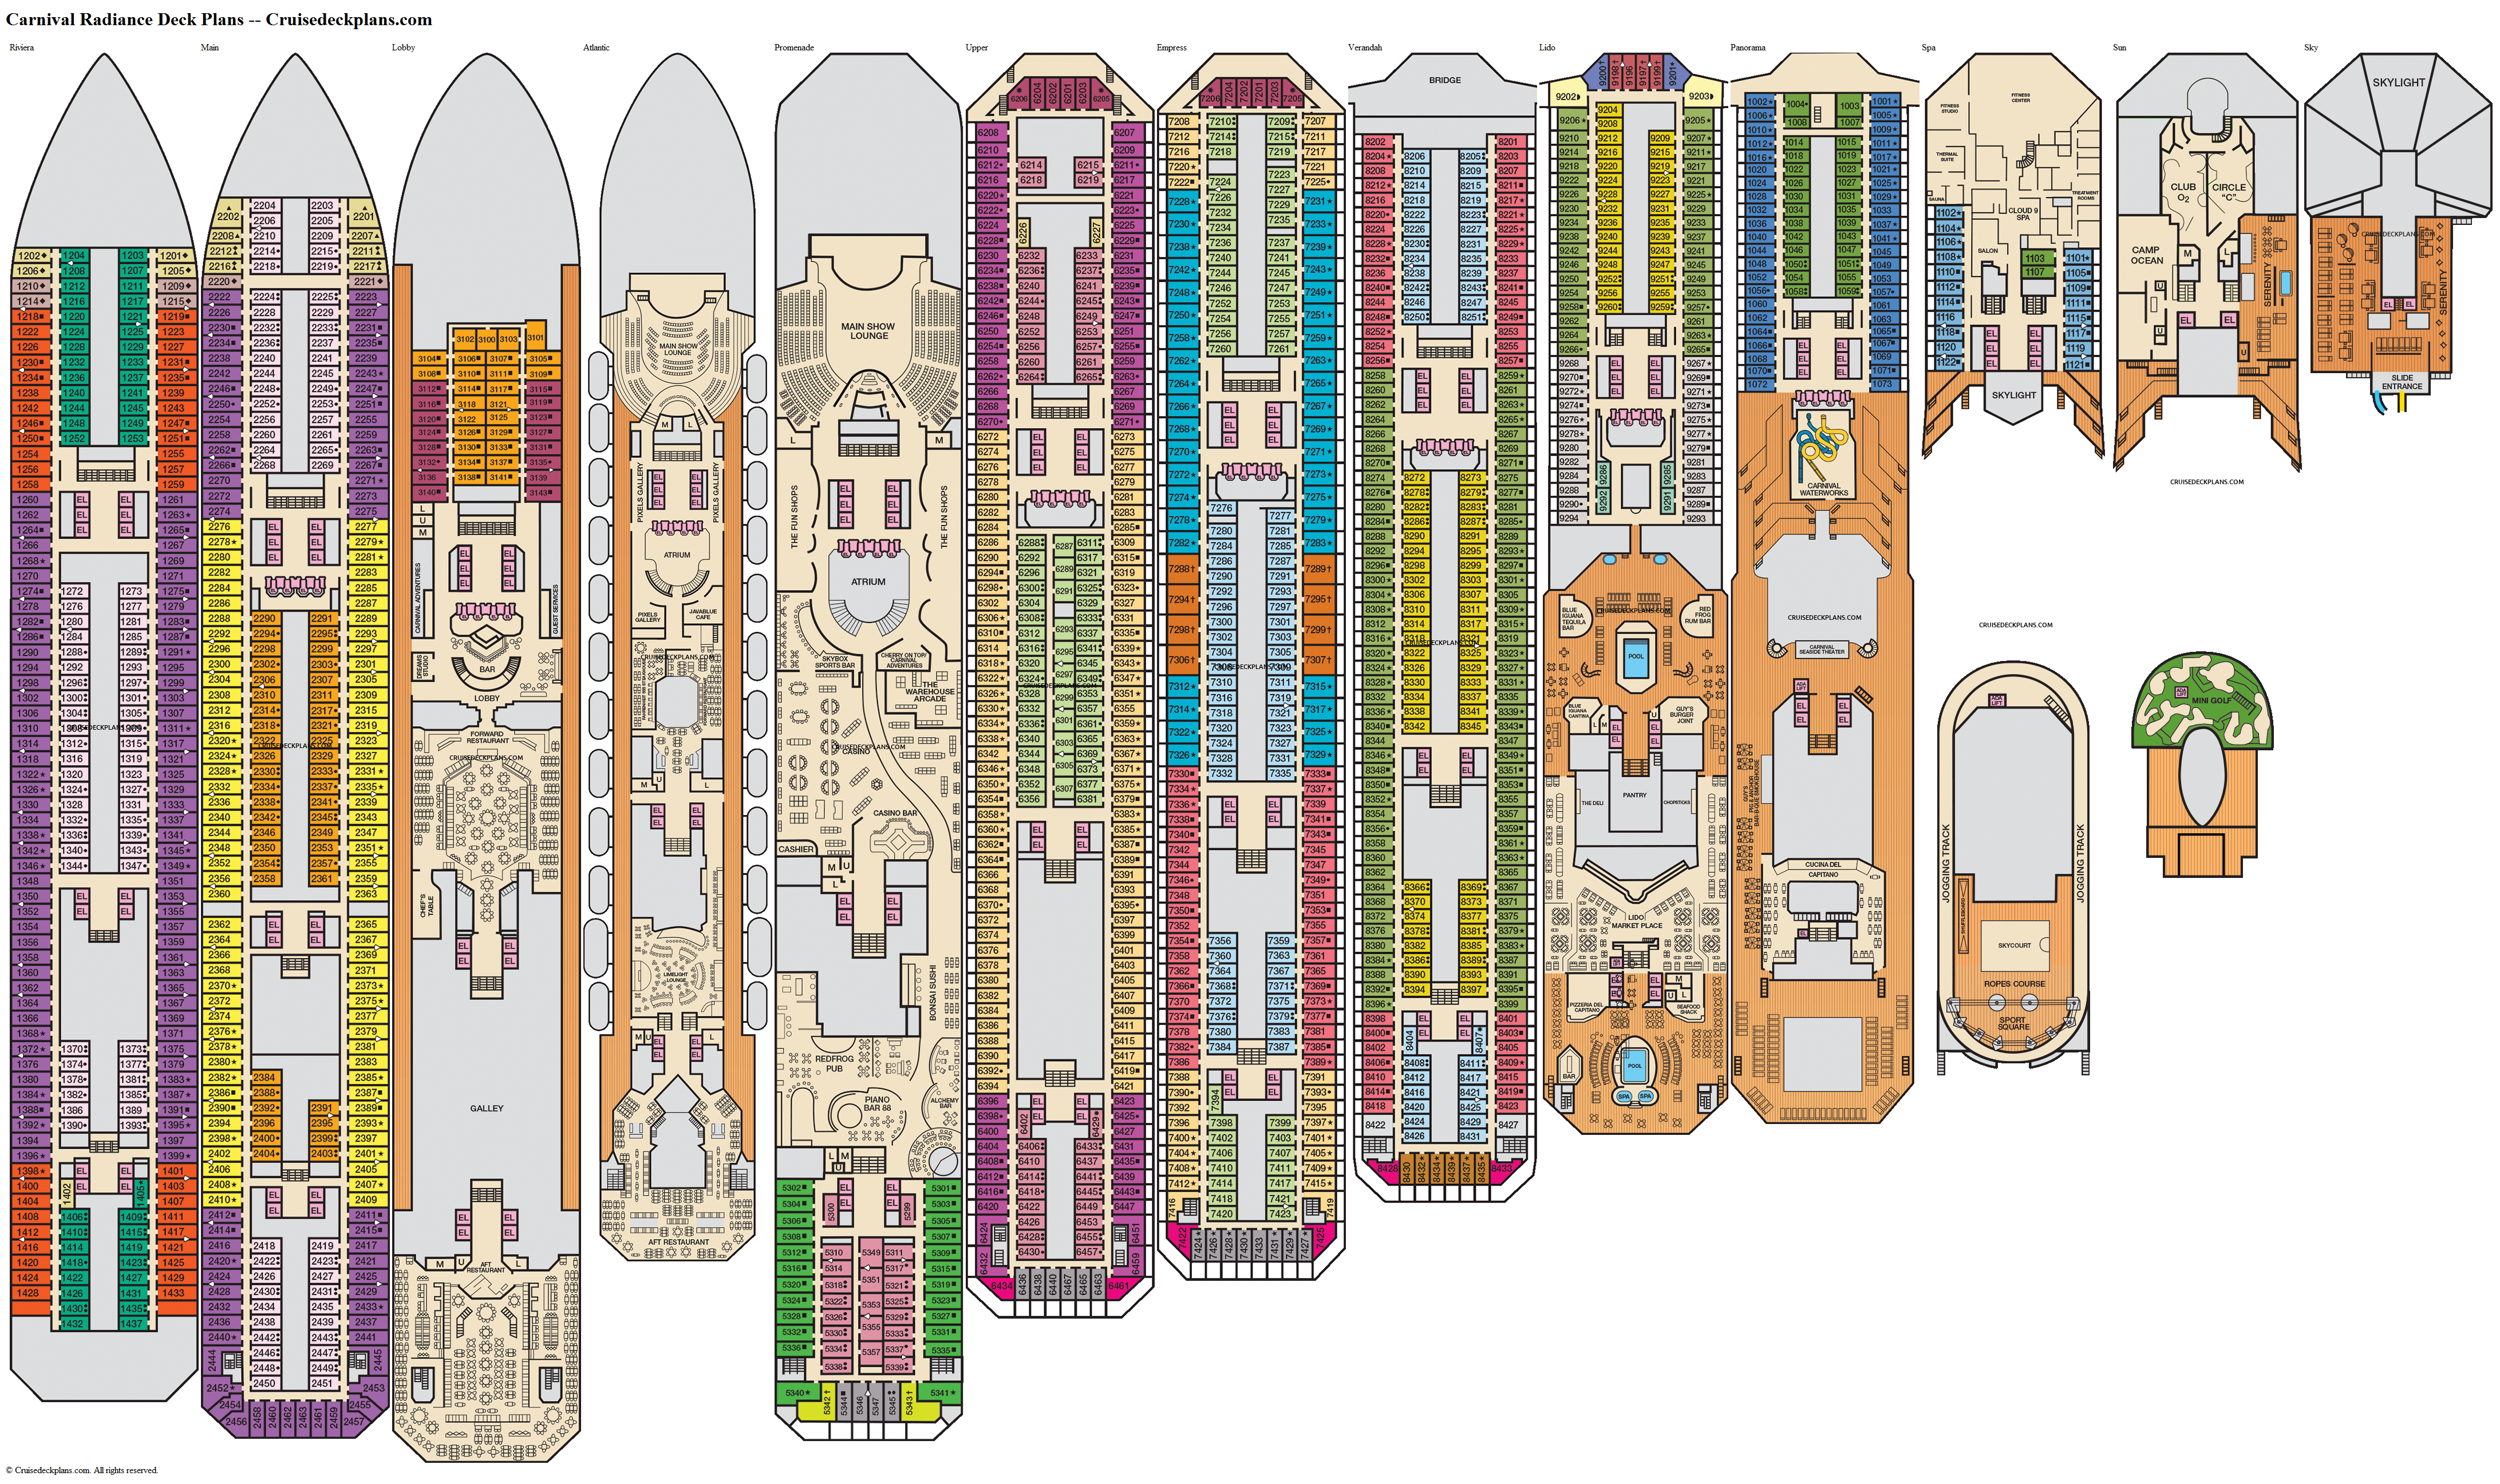 Carnival Radiance deck plans image